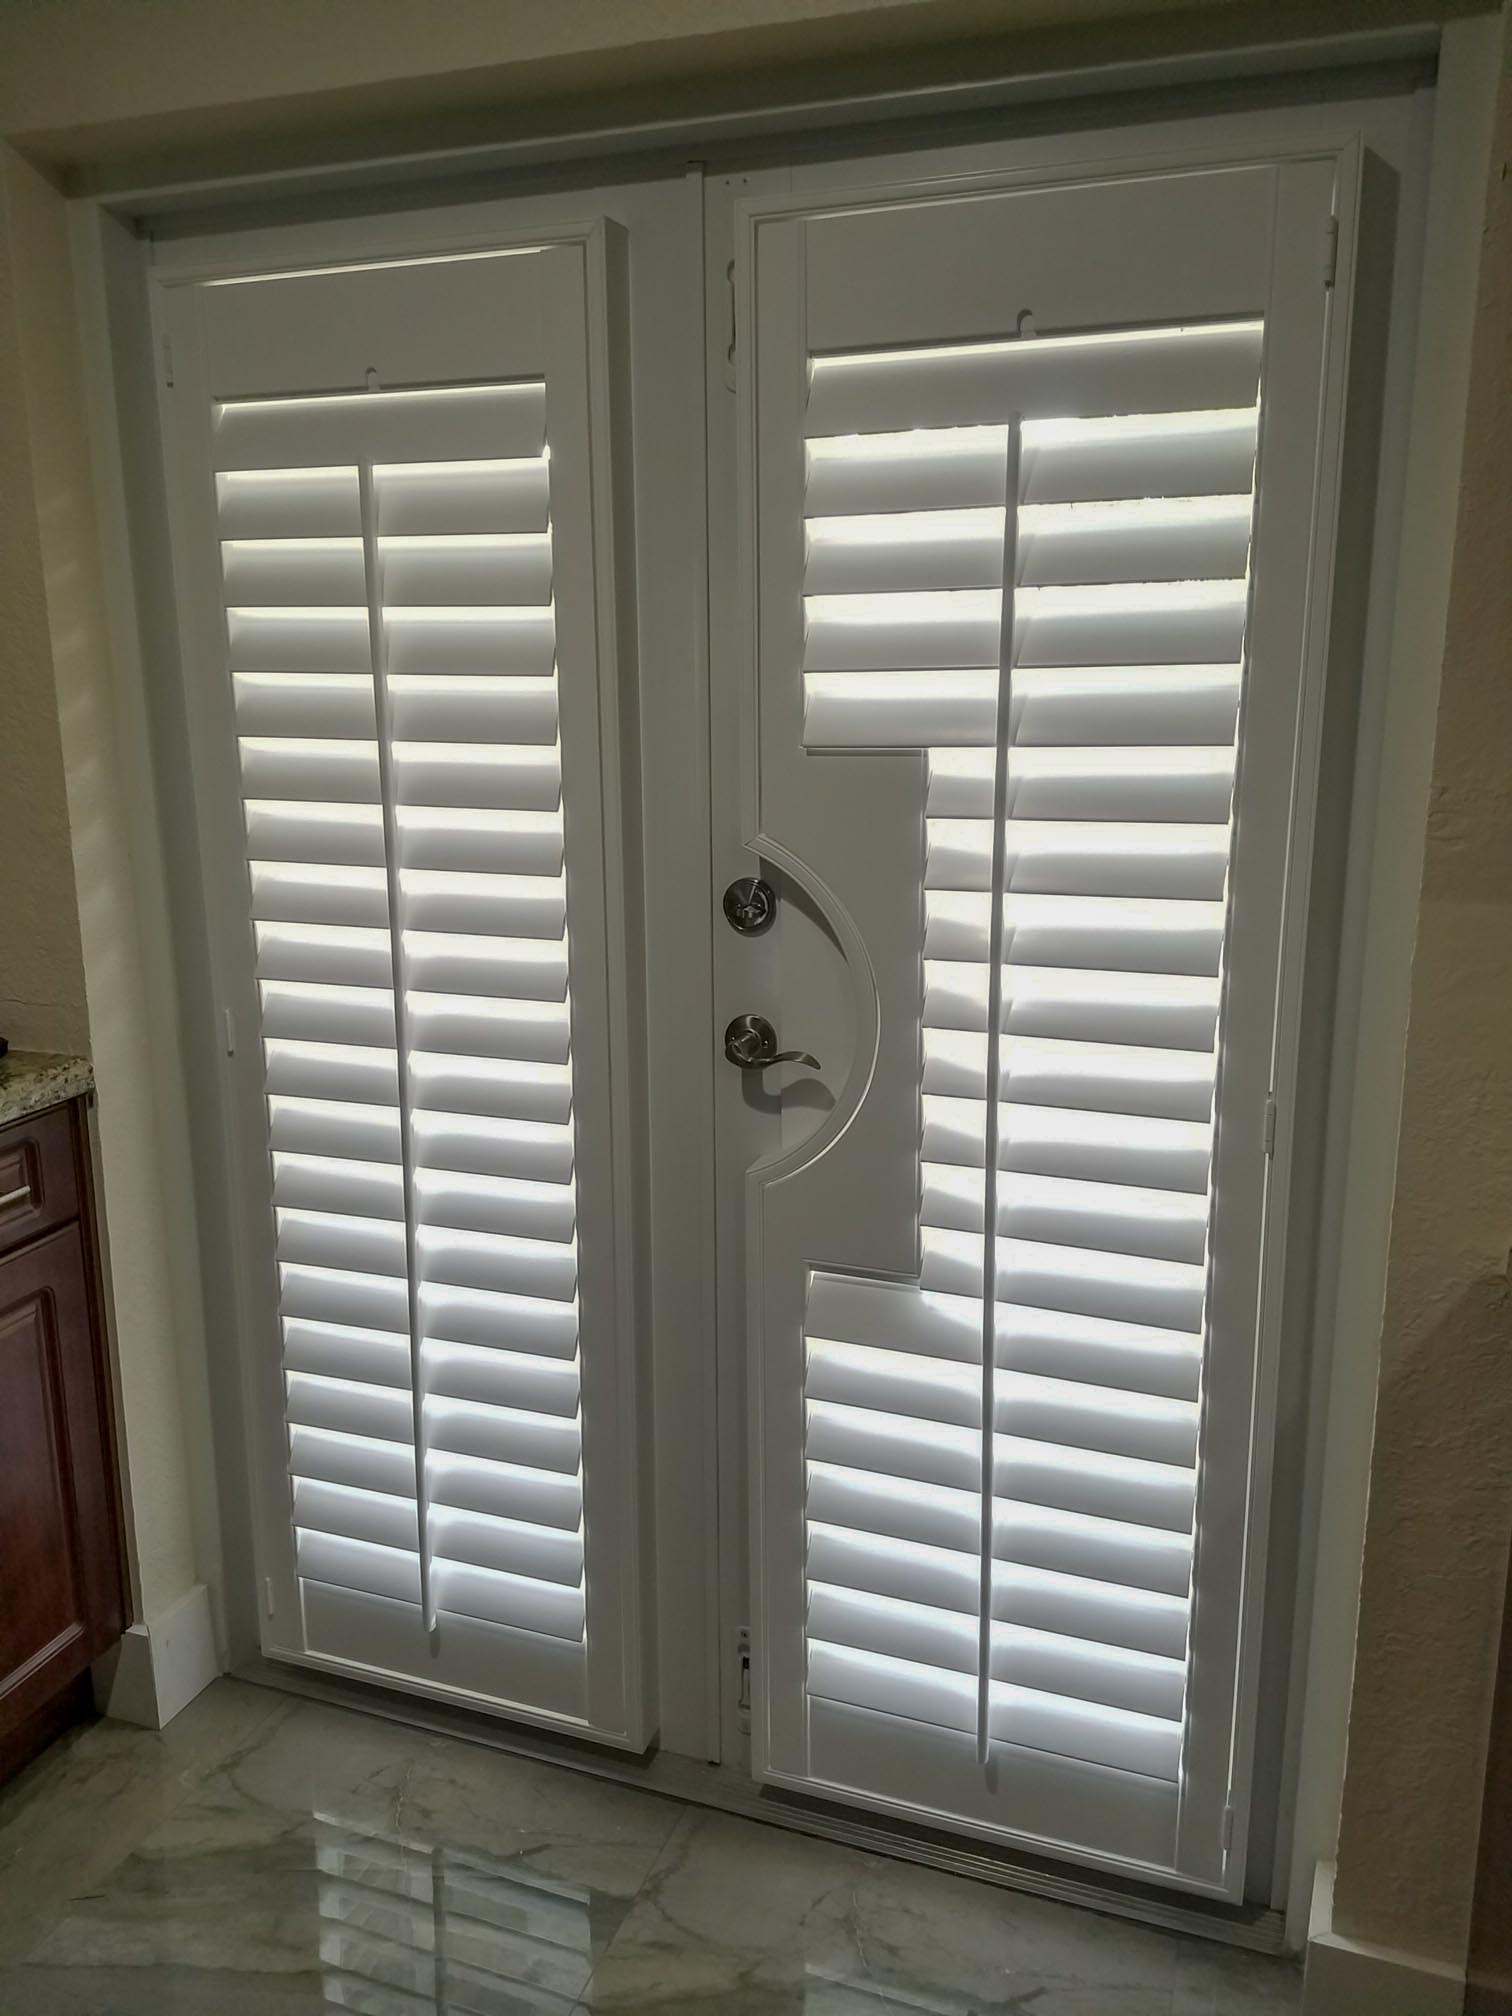 plantation shutters gallery PLANTATION SHUTTERS GALLERY 20171013 140610